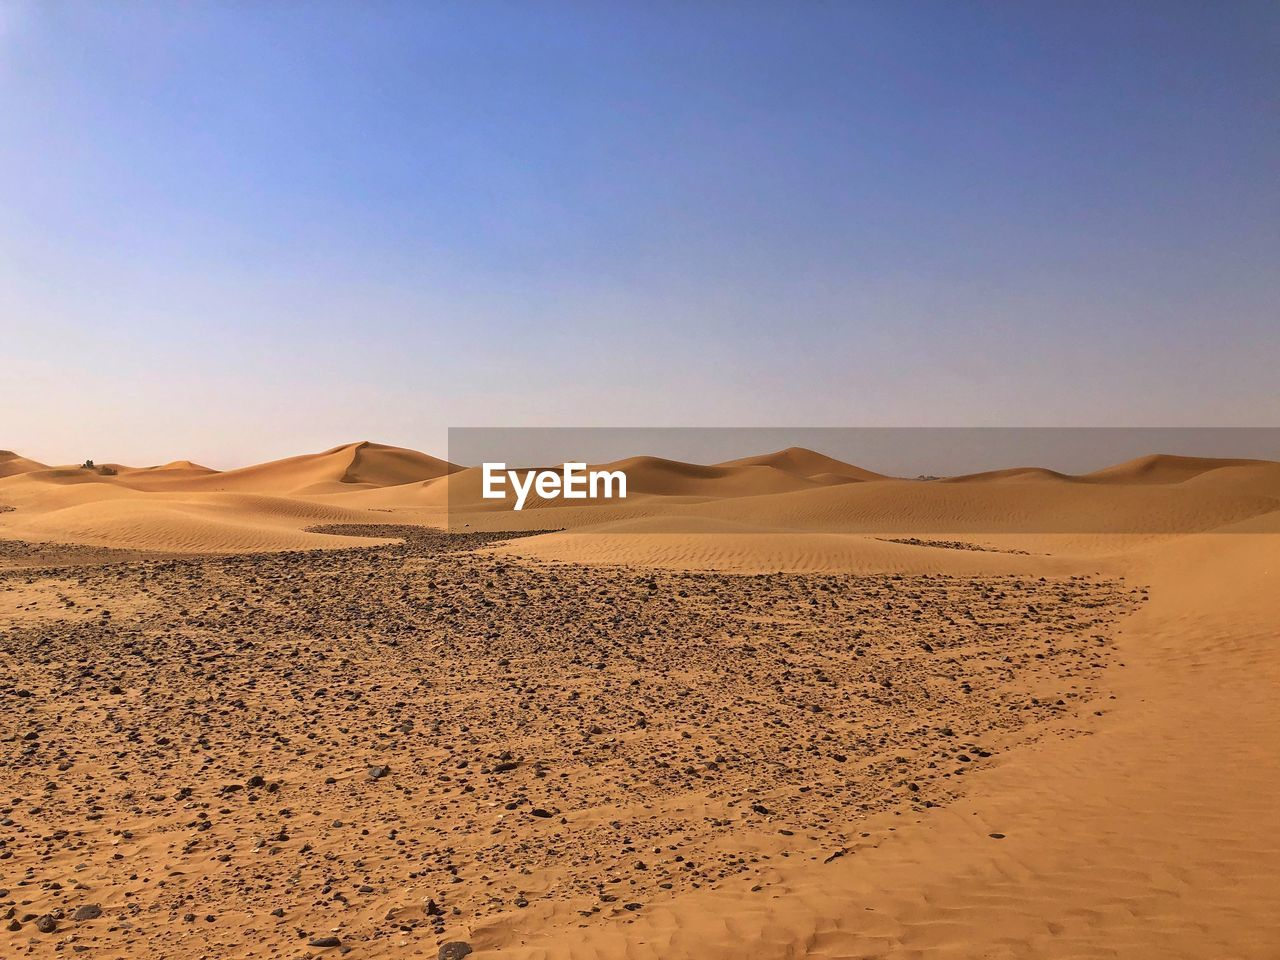 desert, scenics - nature, climate, arid climate, landscape, sky, environment, tranquil scene, sand, land, tranquility, beauty in nature, sand dune, non-urban scene, remote, clear sky, nature, copy space, extreme terrain, barren, no people, outdoors, atmospheric